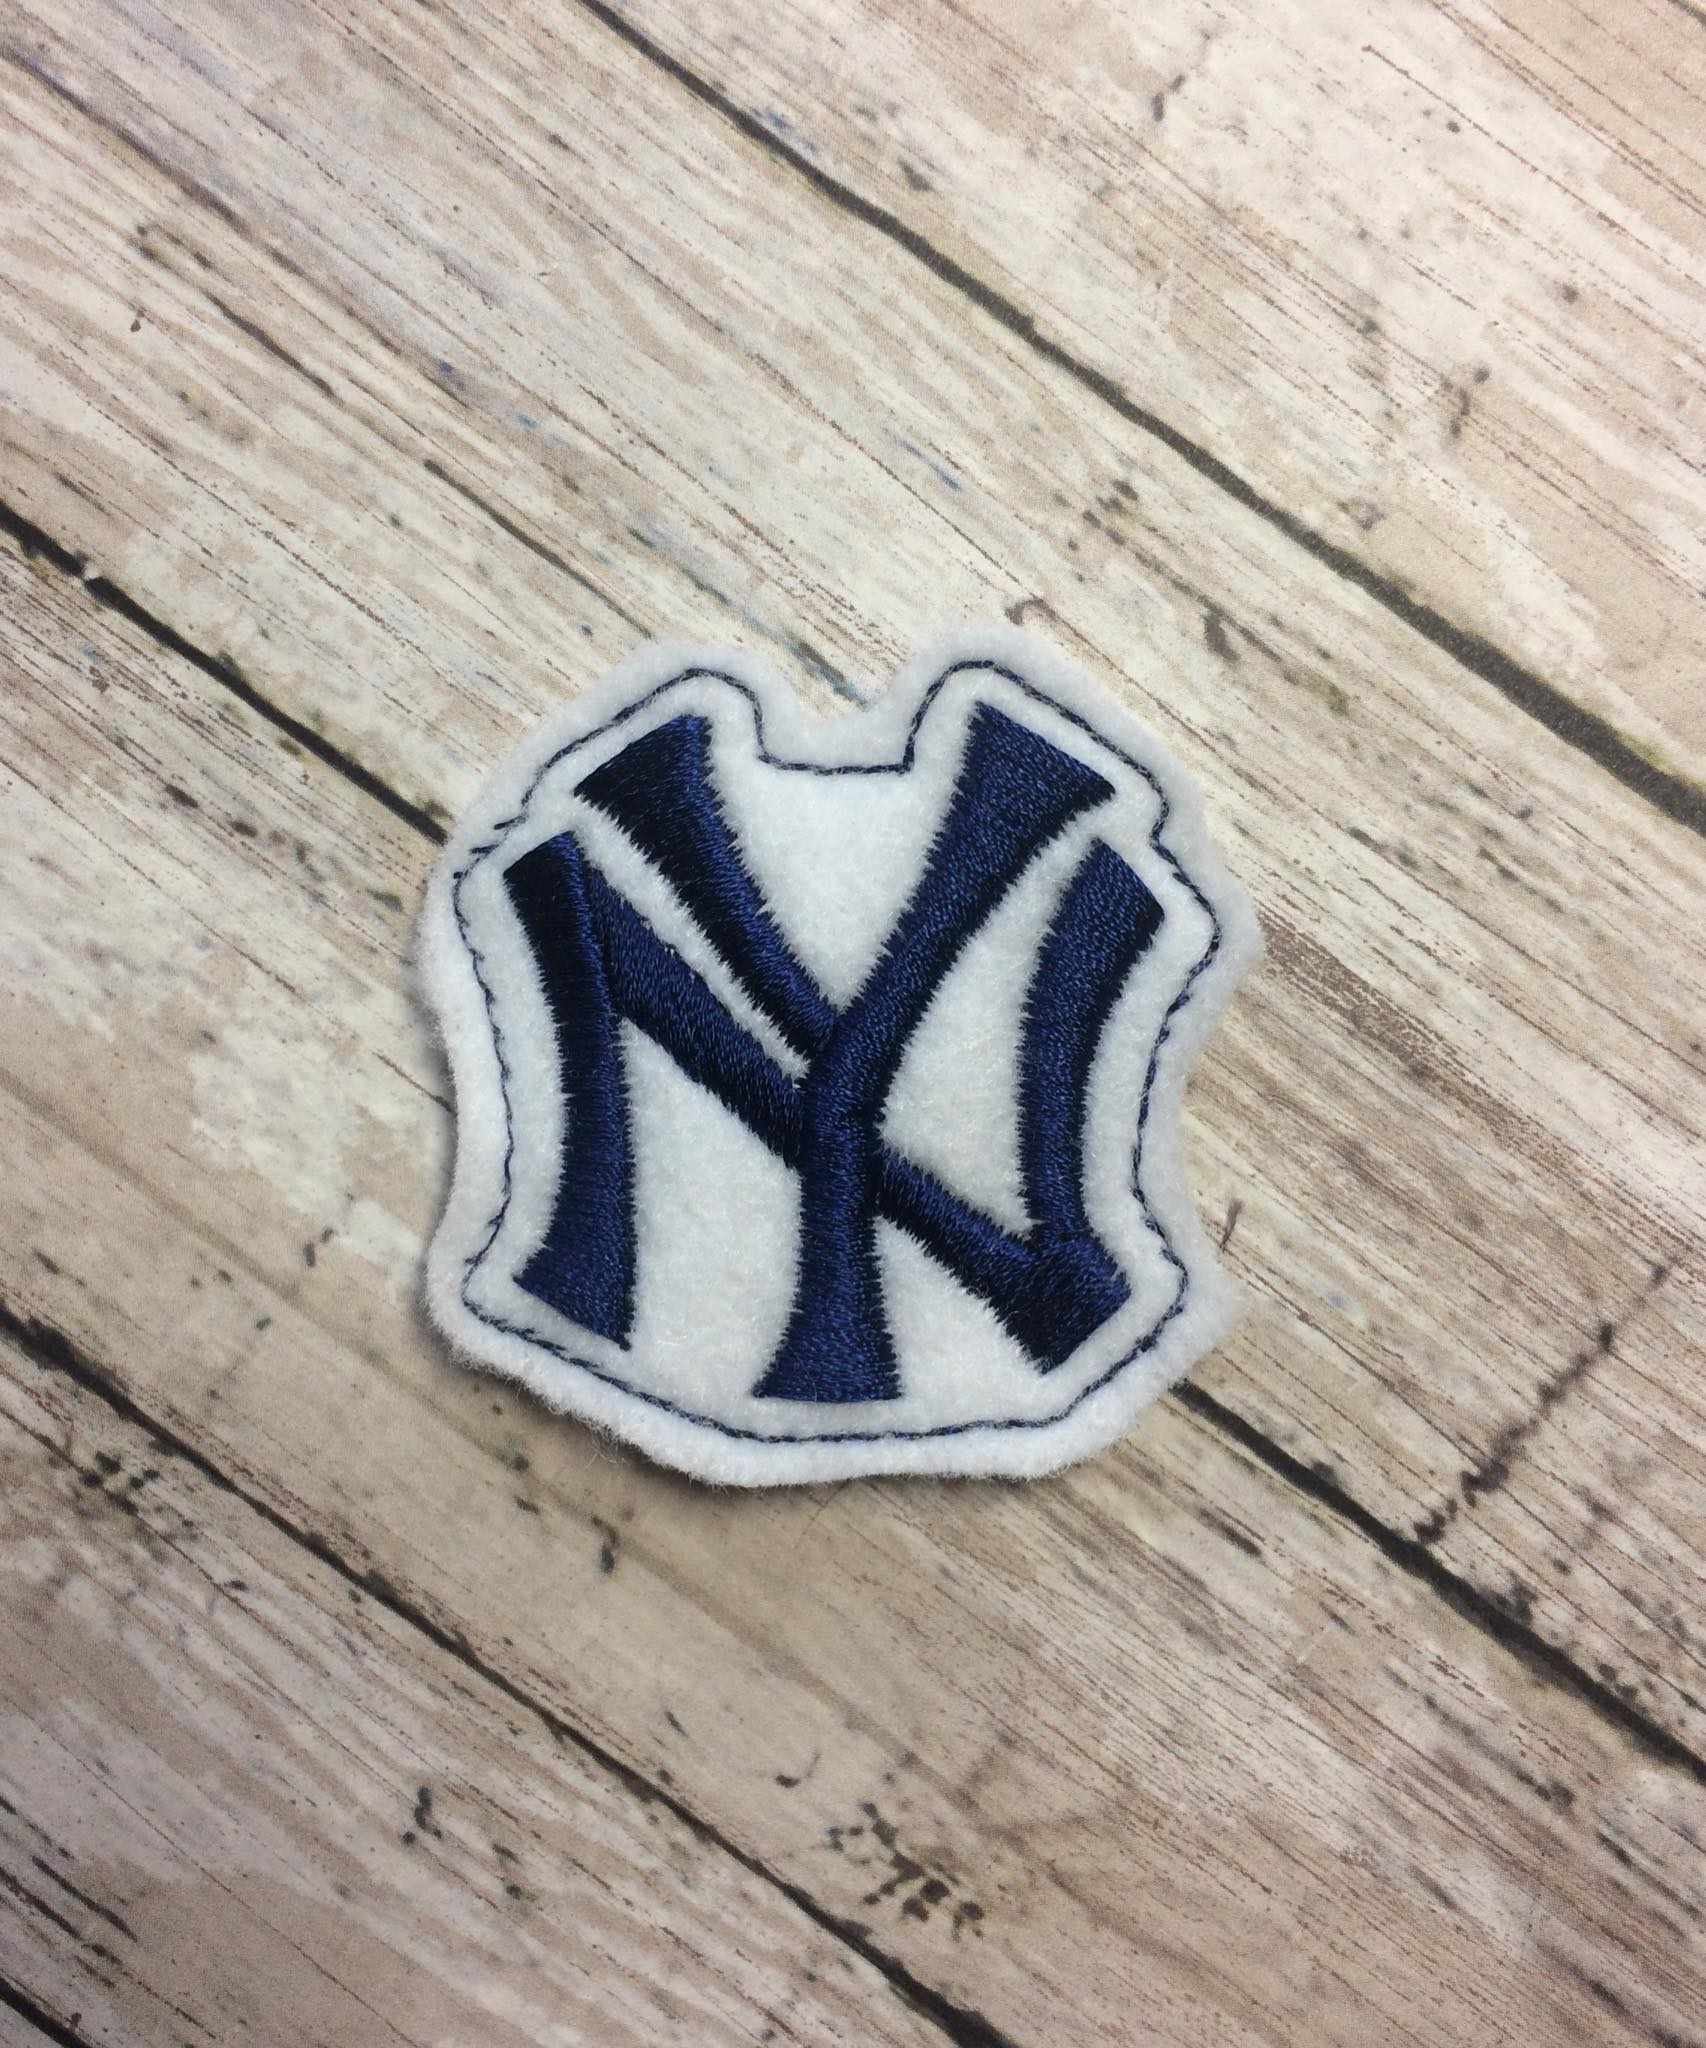 NY Yankees Feltie Embroidery Design